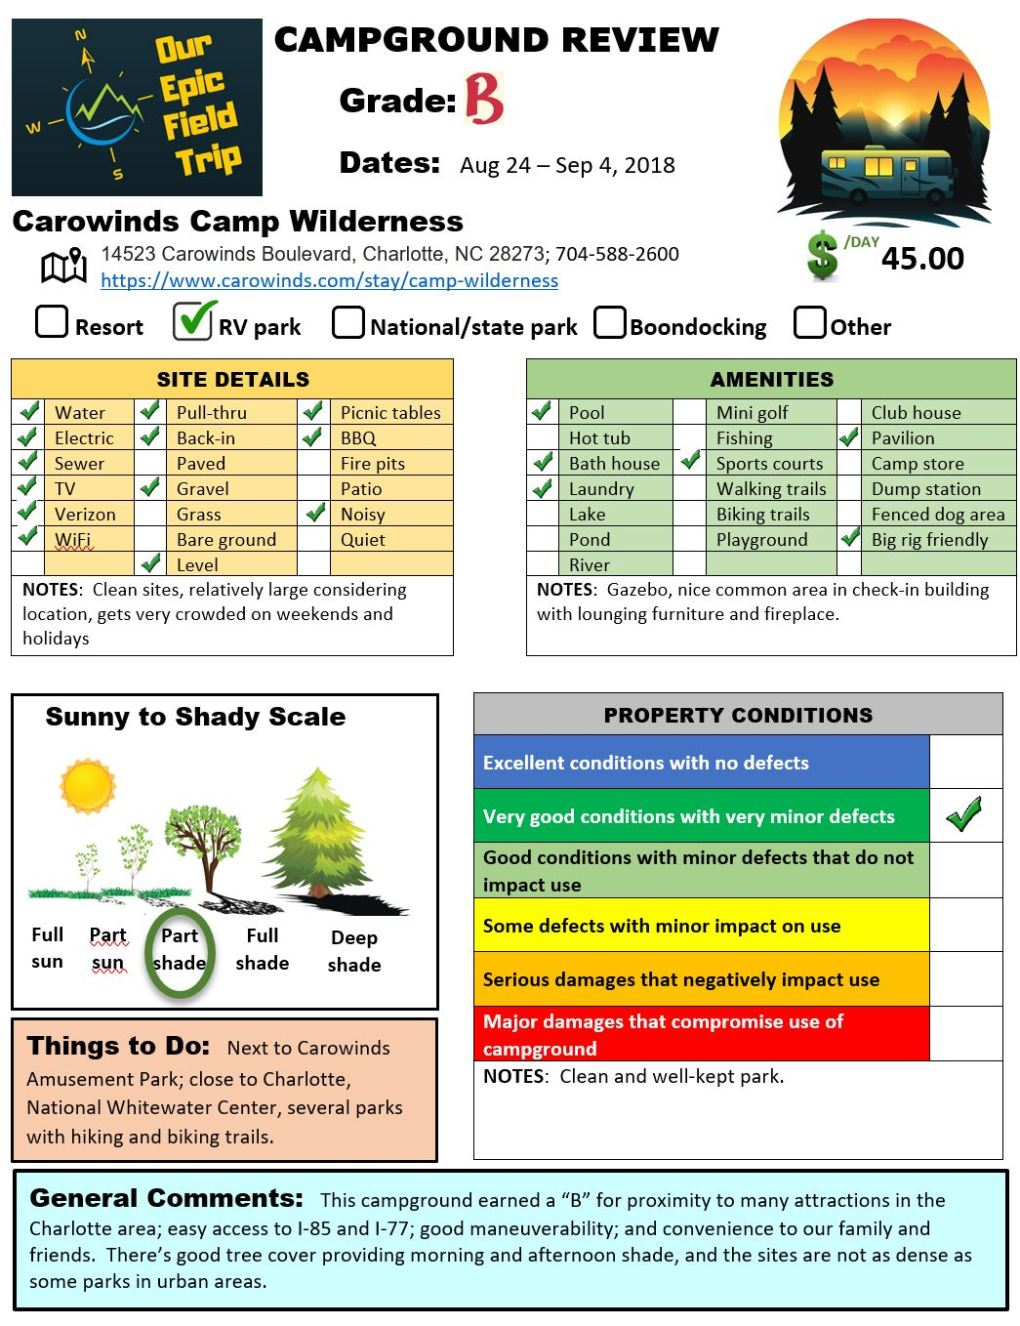 Campground Review - NC - Carowinds Camp Wilderness-Charlotte.JPG